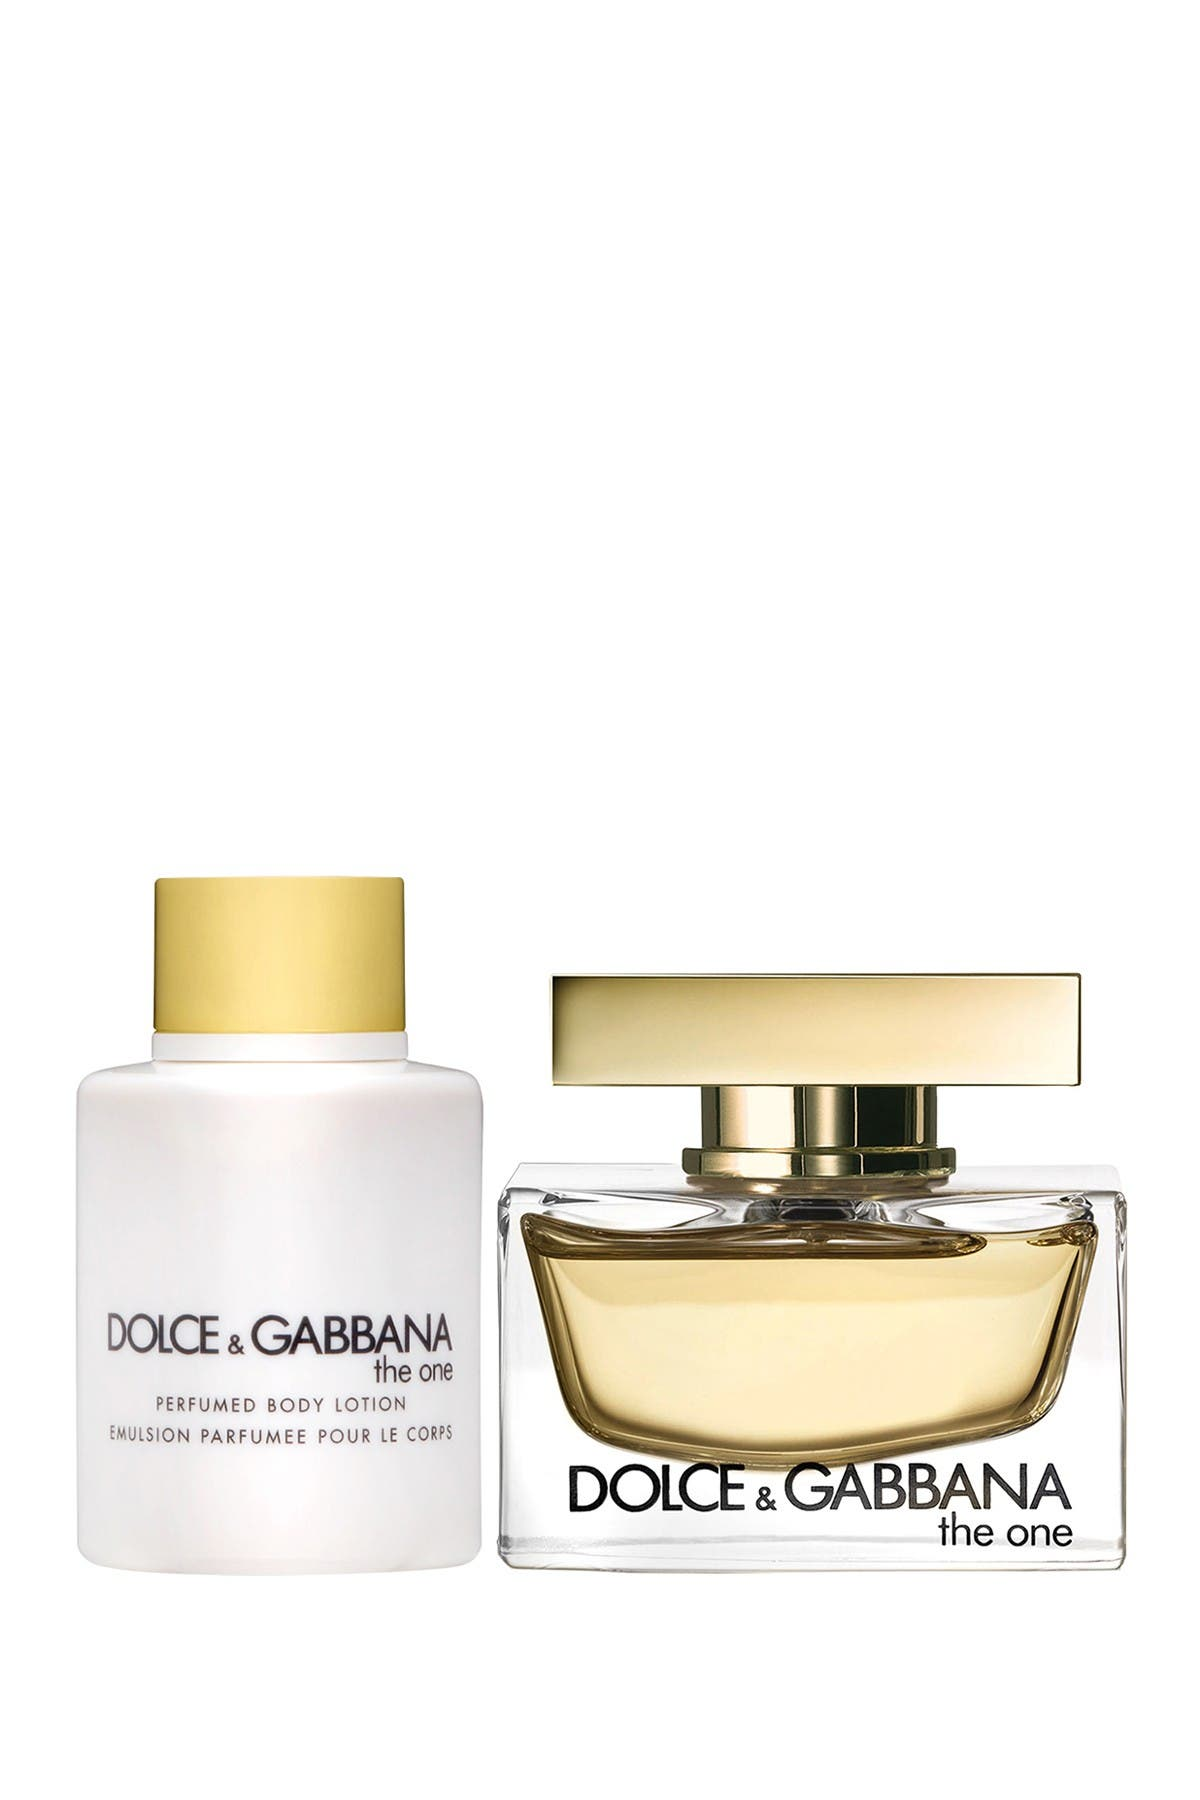 Image of Dolce & Gabbana The One Gift Set